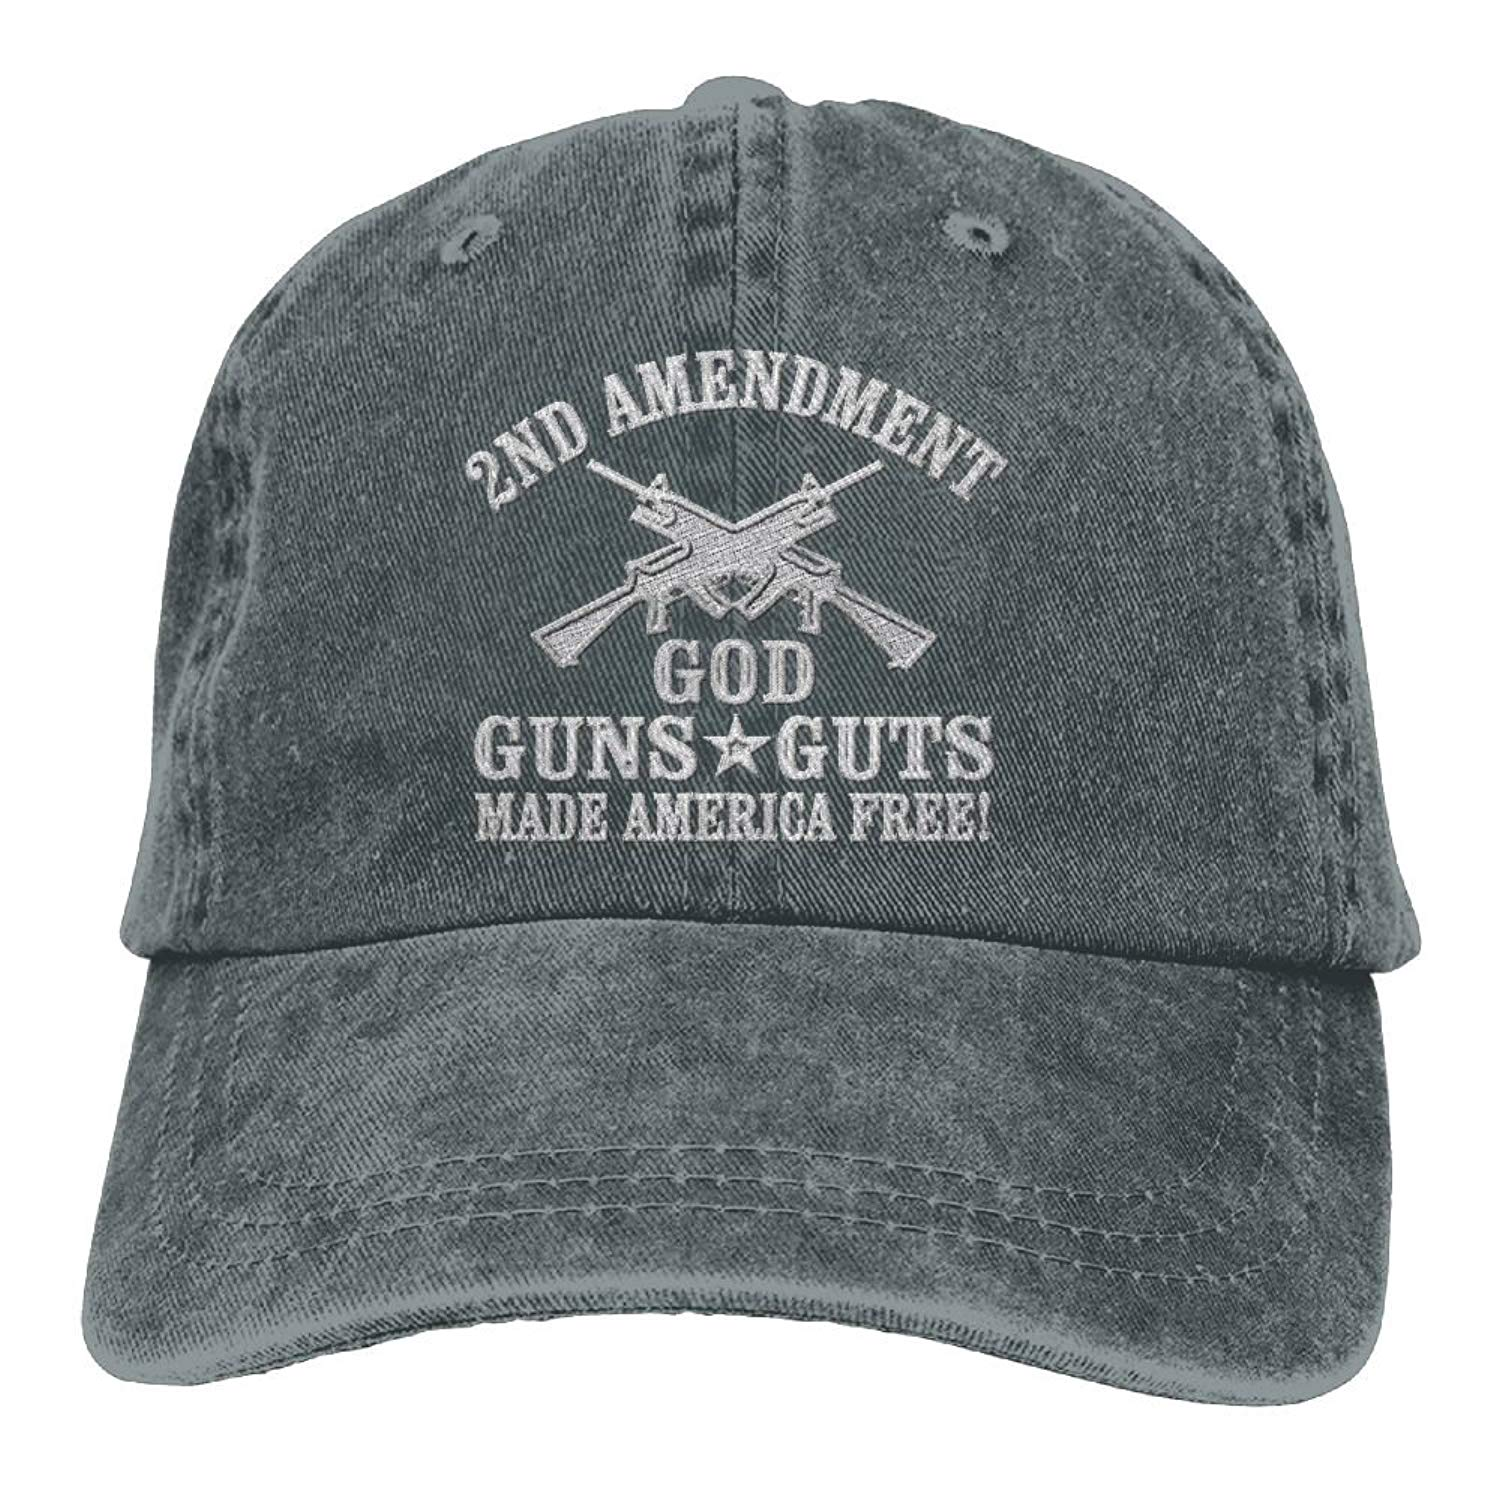 Get Quotations · Inlenged God Guns Guts Made America Free - Embroidered  Retro Denim Baseball Hat Trucker Hat Dad 39408bcdd6e4